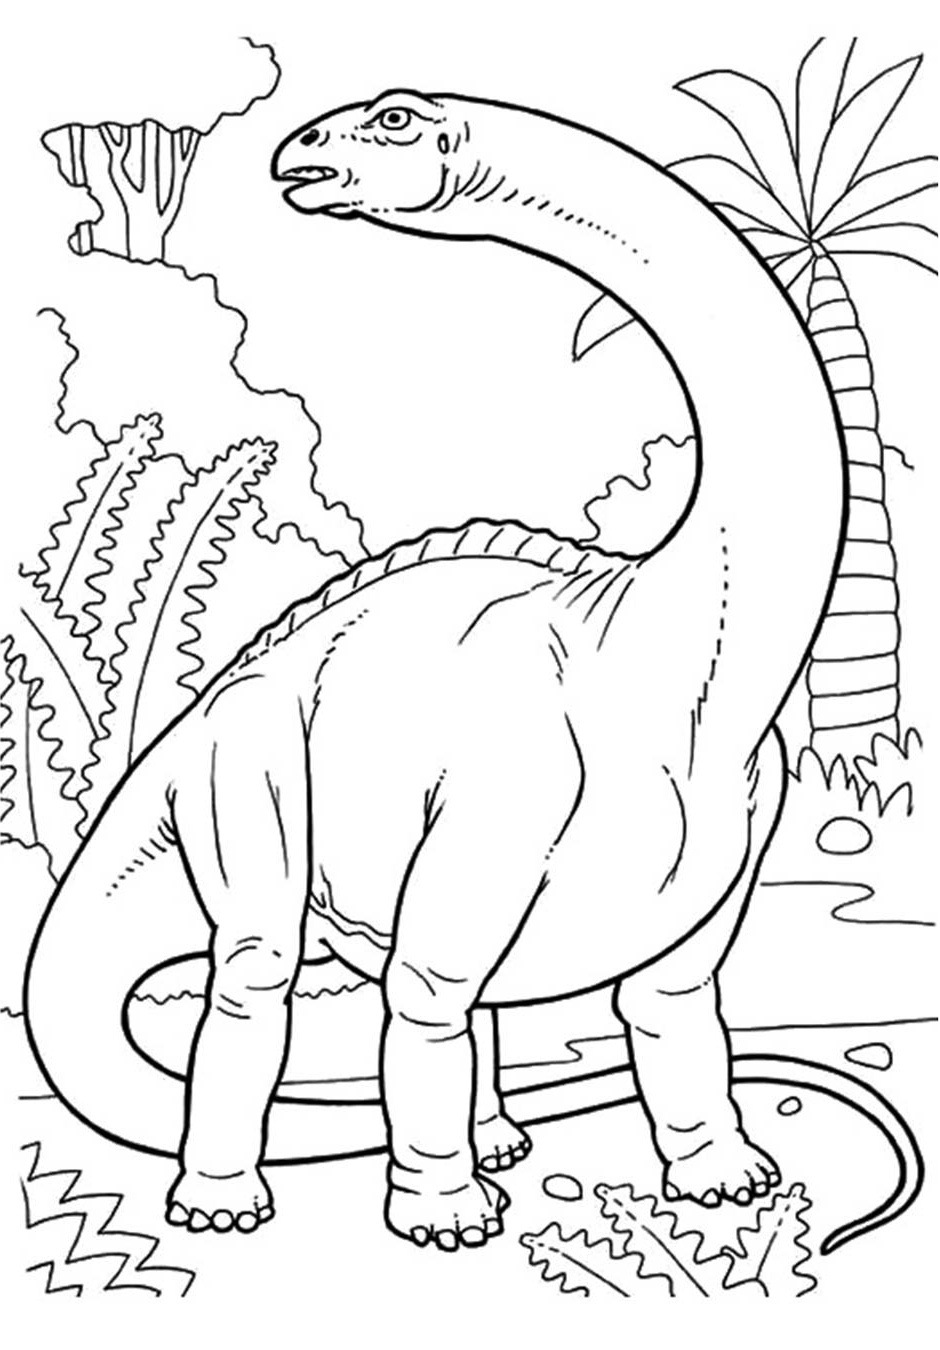 dinosaur to color fight dinosaurs coloring pages for kids printable free color to dinosaur